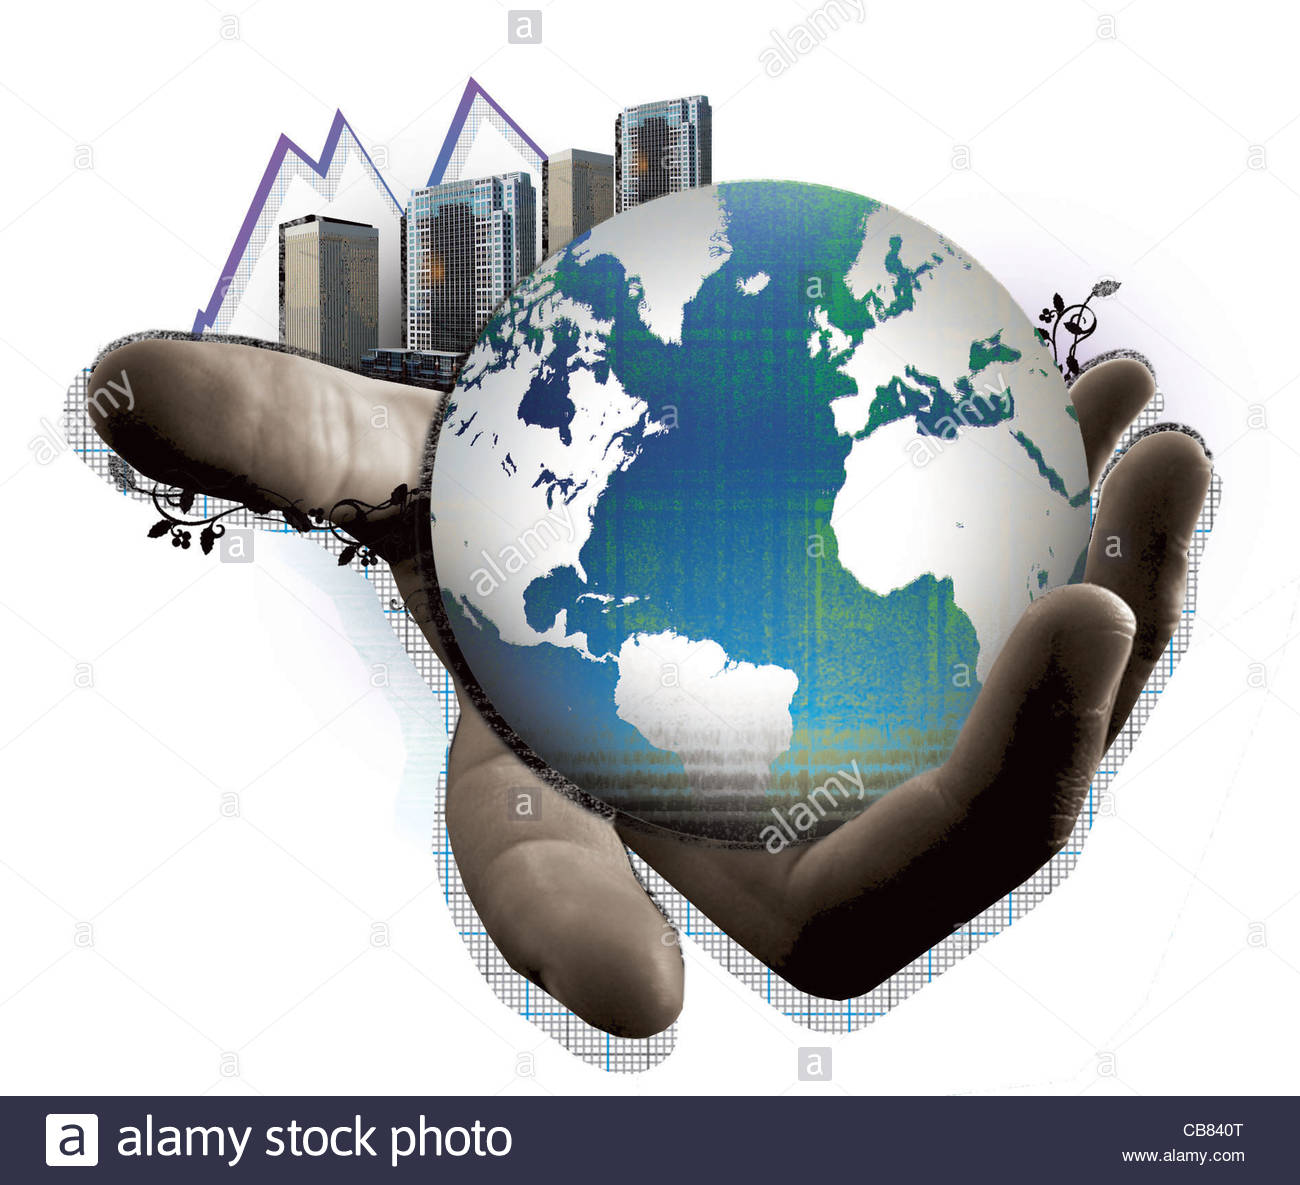 globe Hand Big city Globe Earth Globe Geography globe globe world